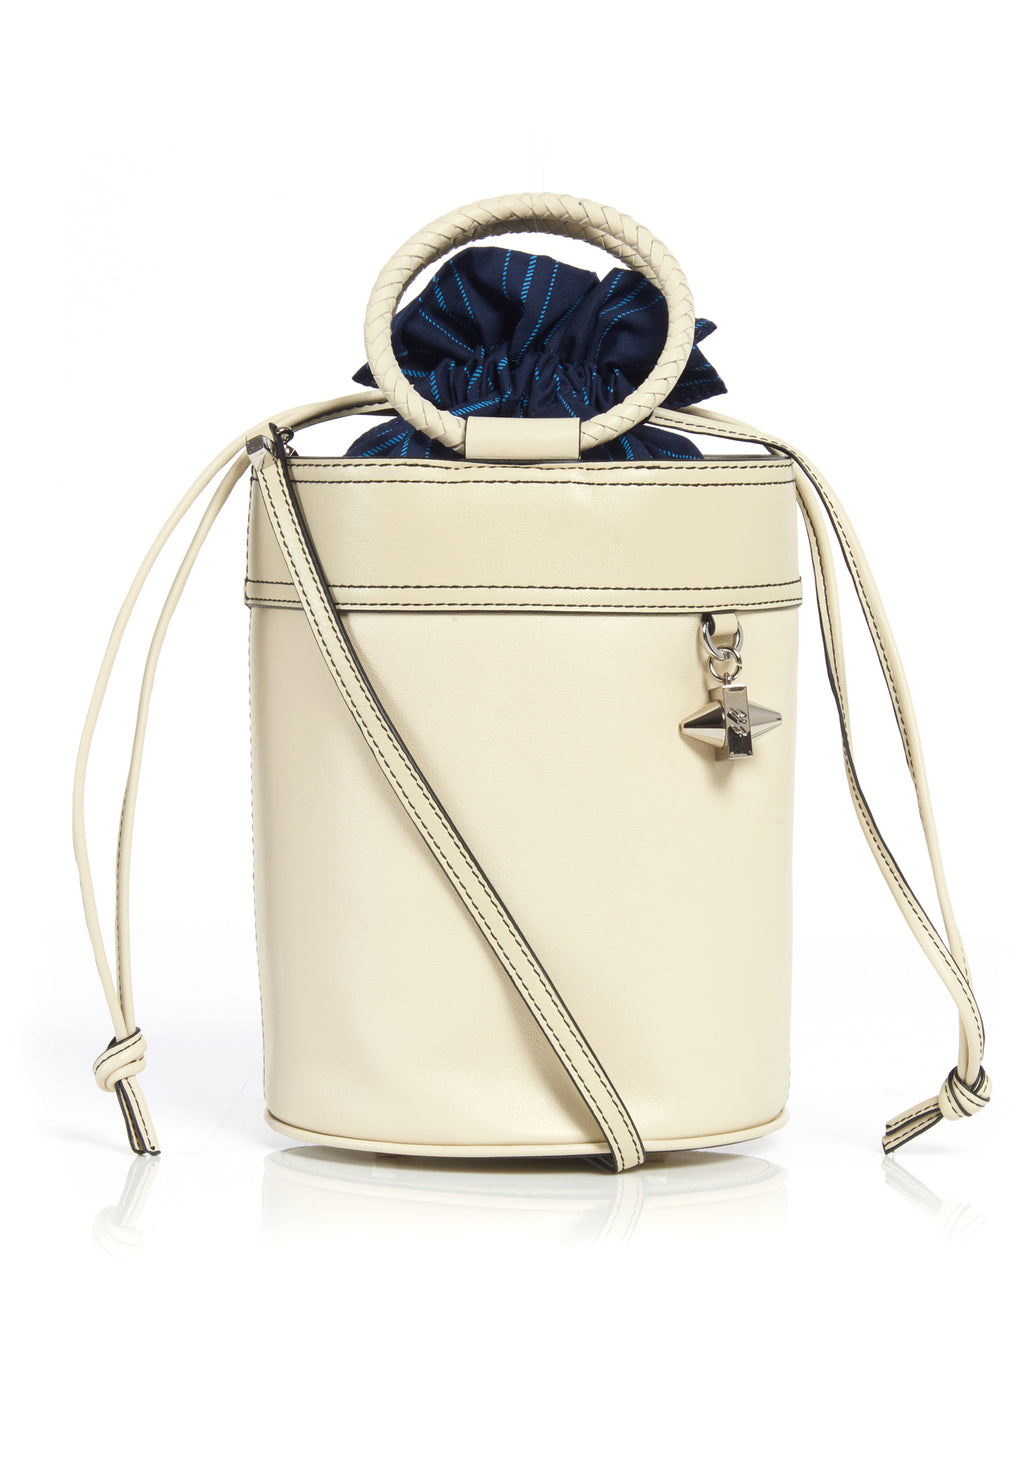 MARIGOT BUCKET BAG